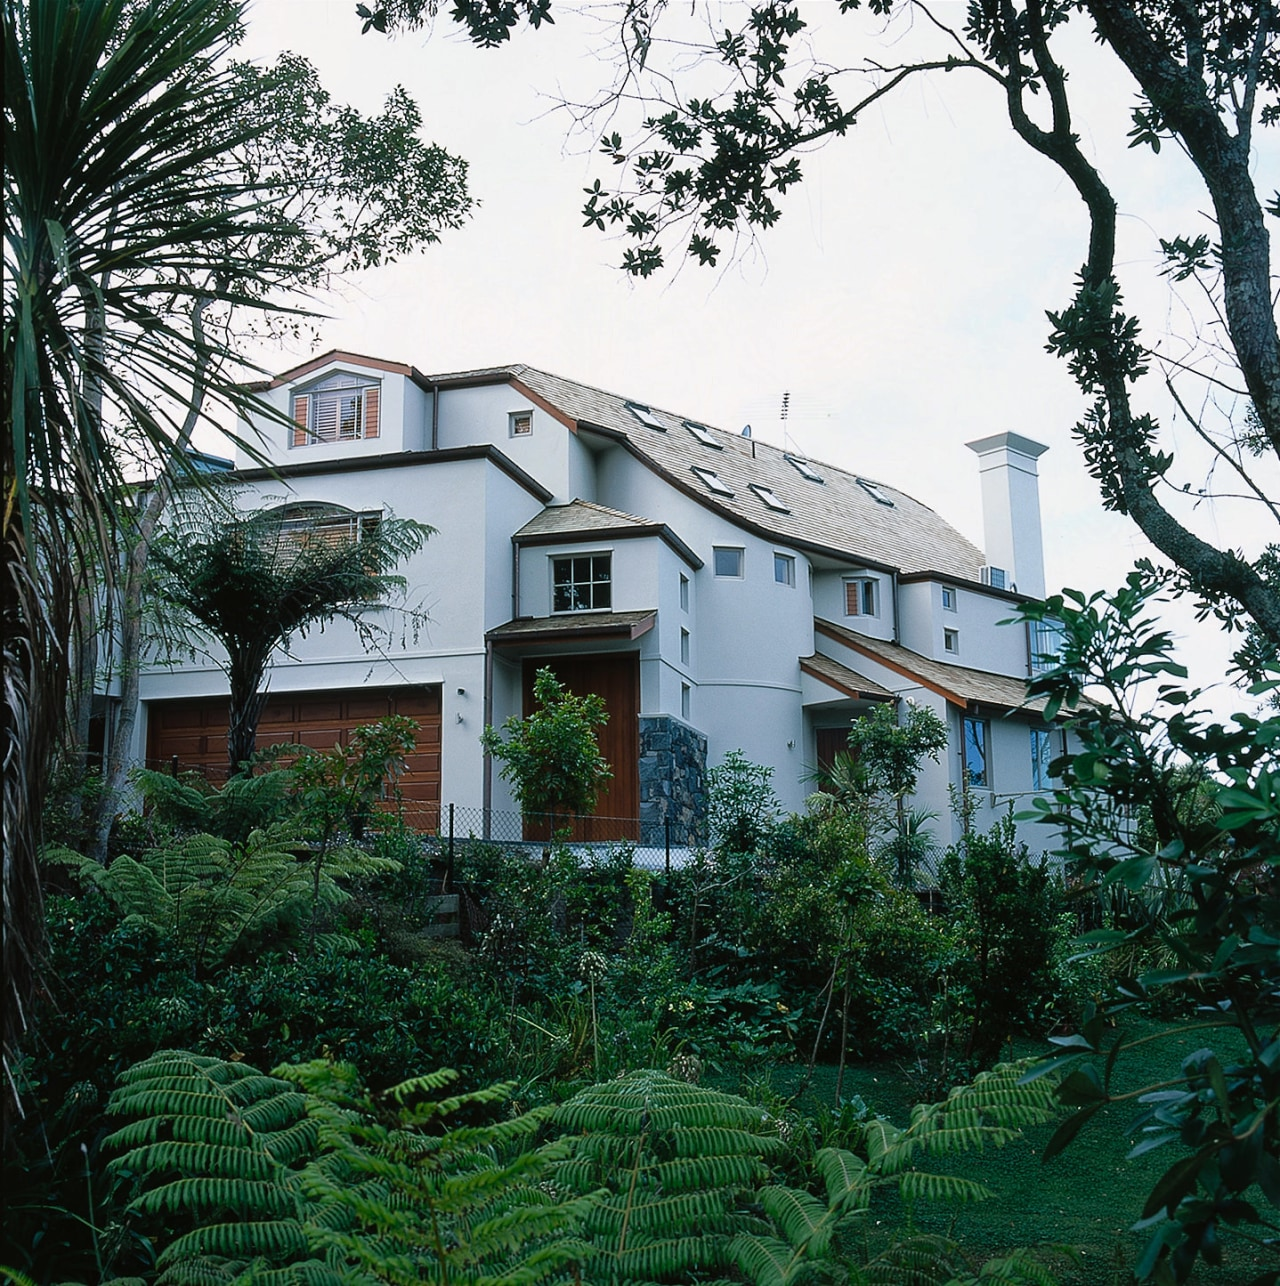 View of this large home architecture, building, cottage, estate, facade, home, house, mansion, neighbourhood, plant, property, real estate, residential area, tree, villa, window, white, green